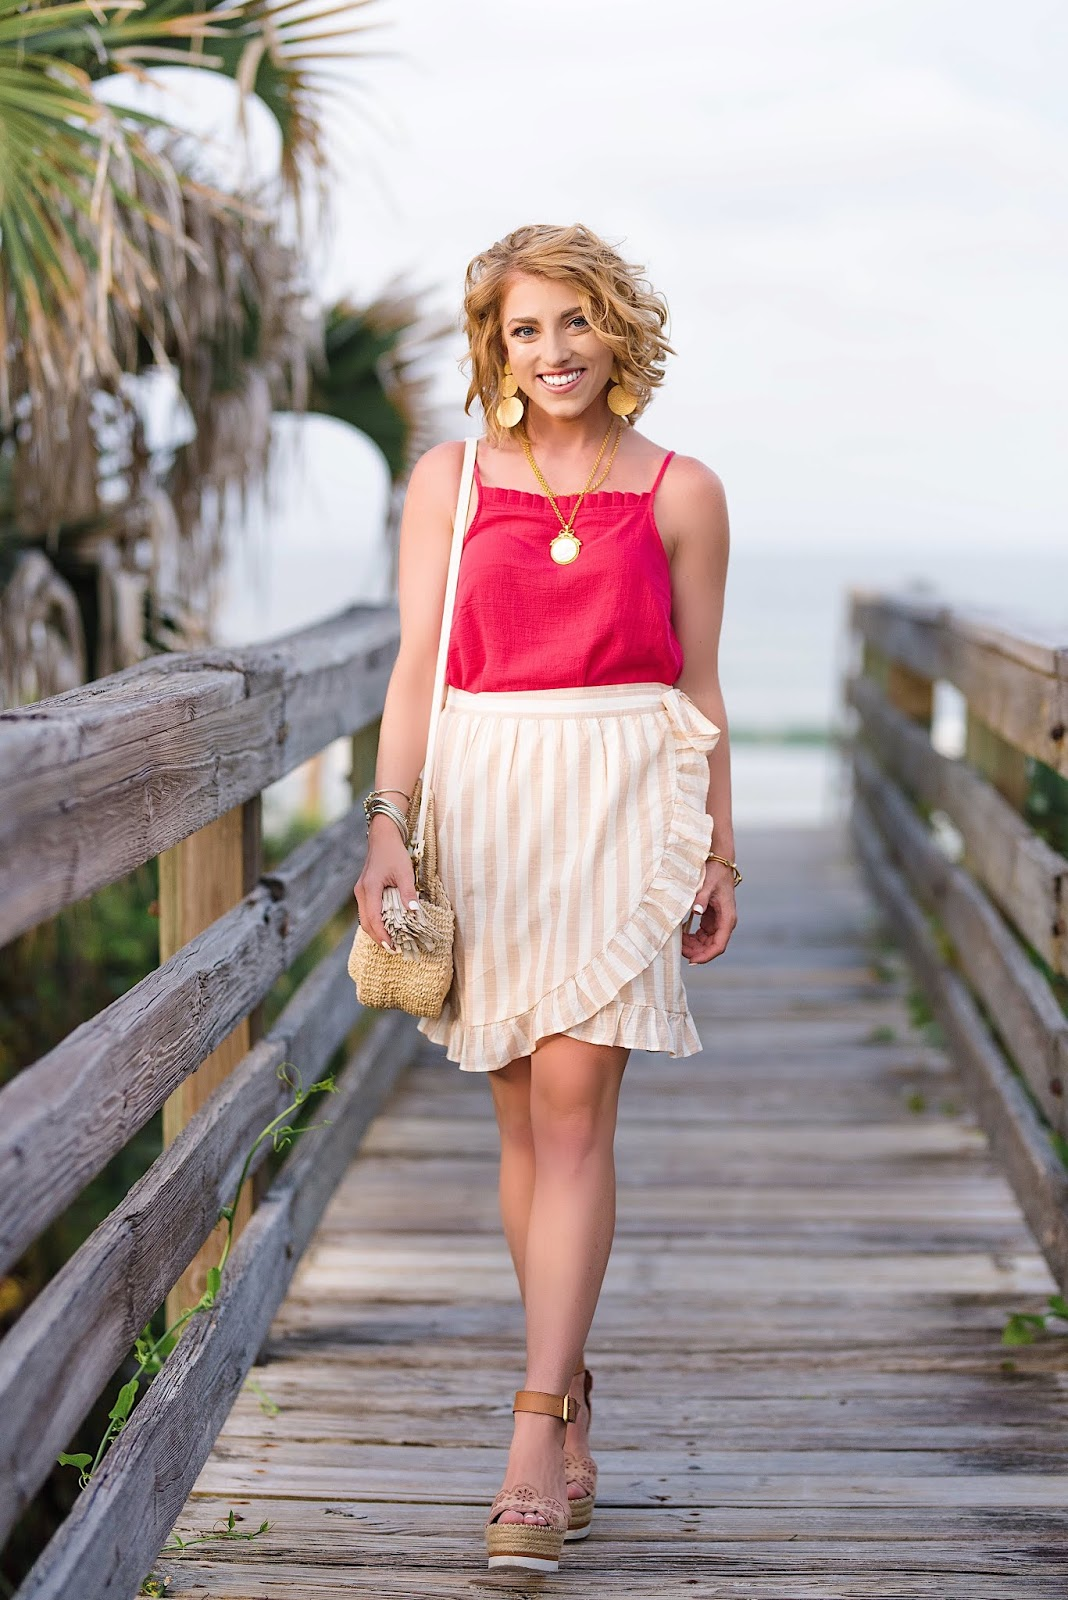 Ivory and White Ruffle Wrap Skirt - Something Delightful Blog